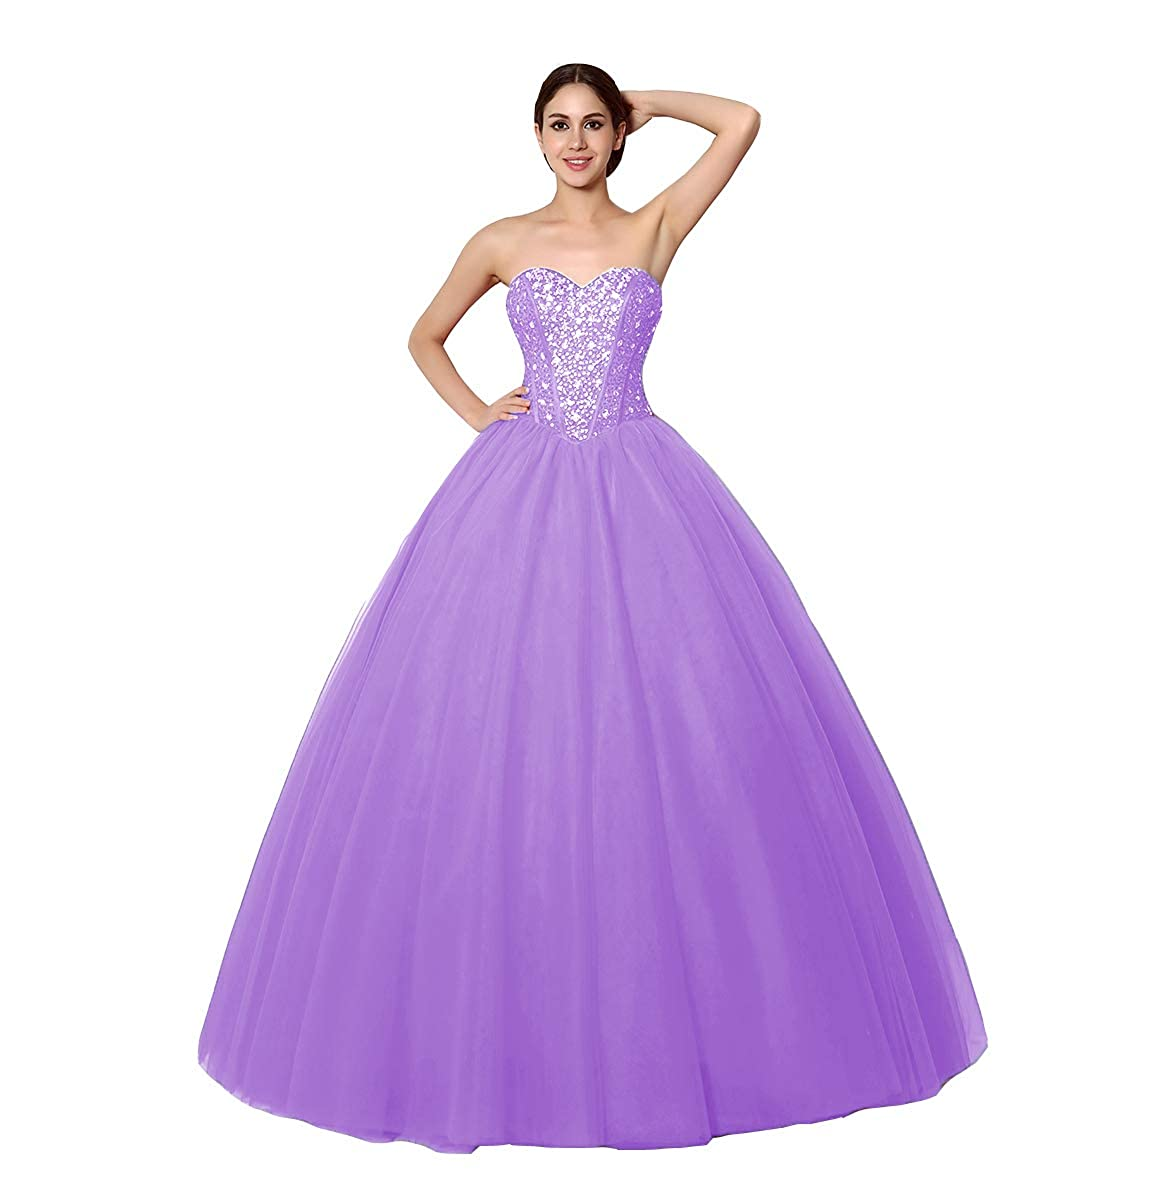 Lavender FTBY Sweetheart Beaded Quinceanera Dress Sweet 16 Tulle Ball Gowns Long Prom Dress Crystals 2019